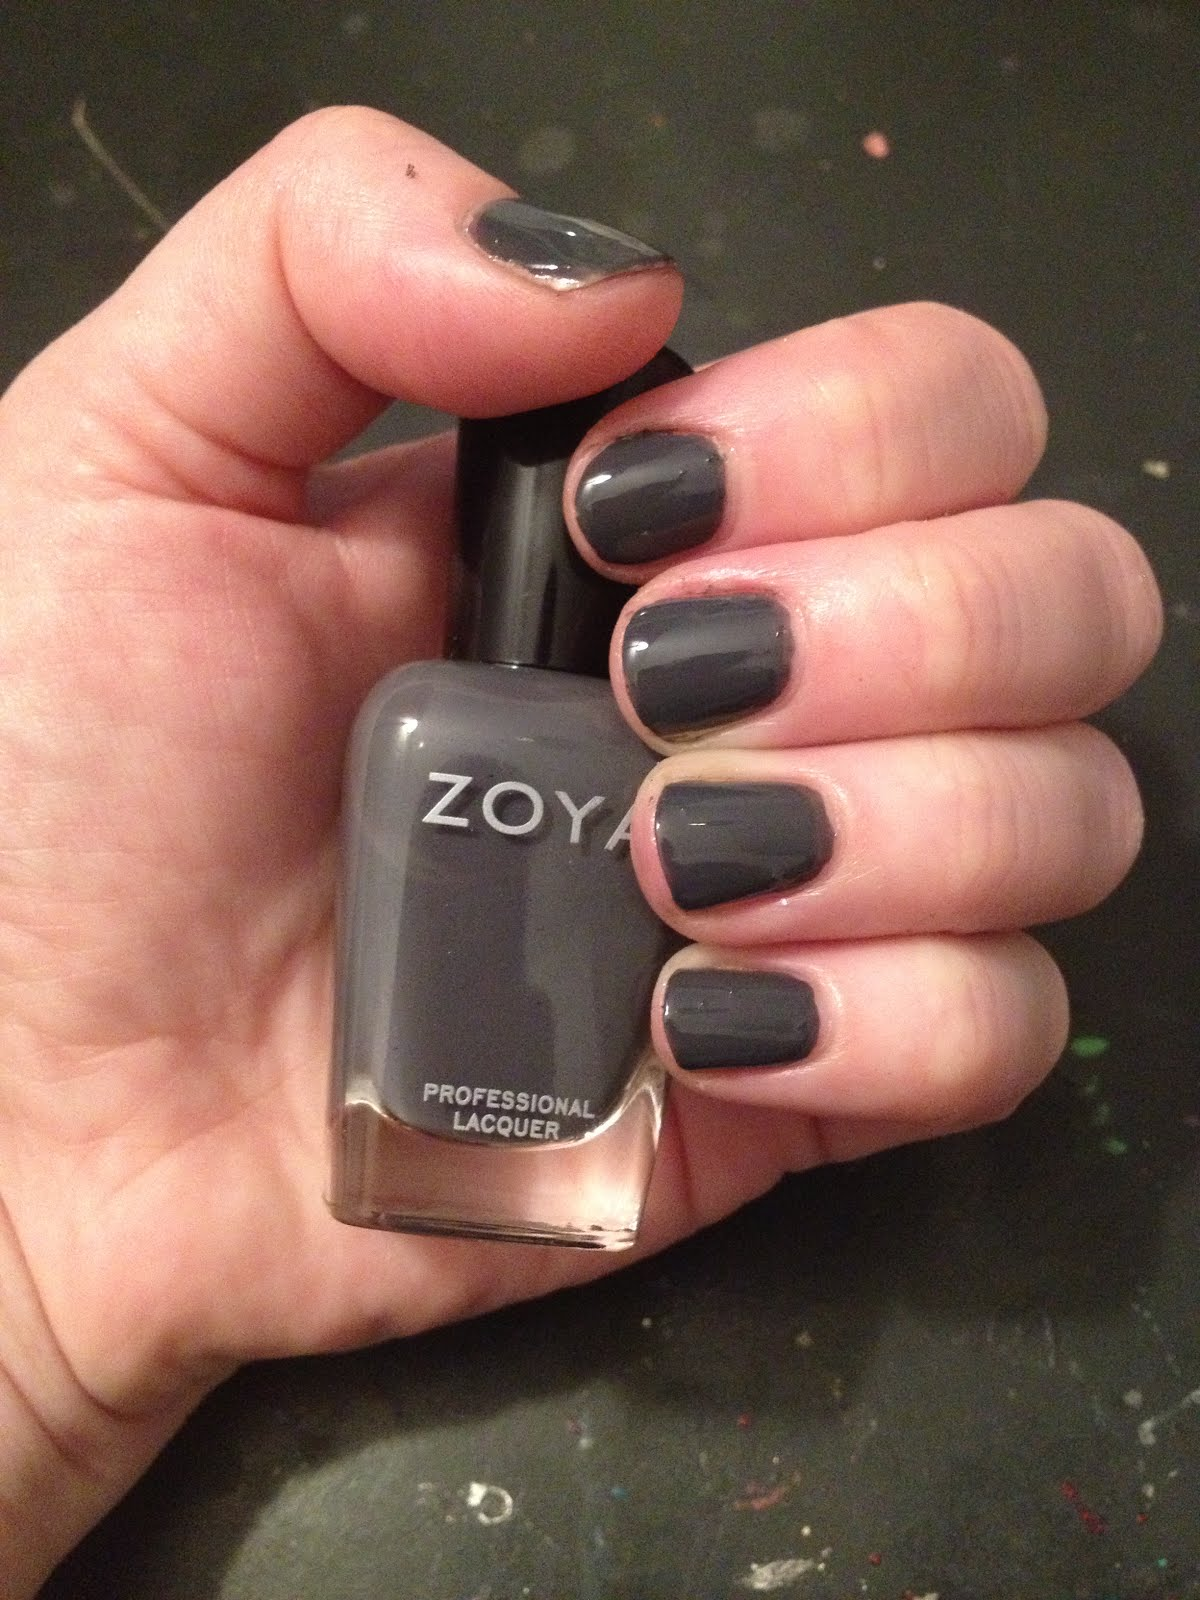 Zoya kelly nail polish